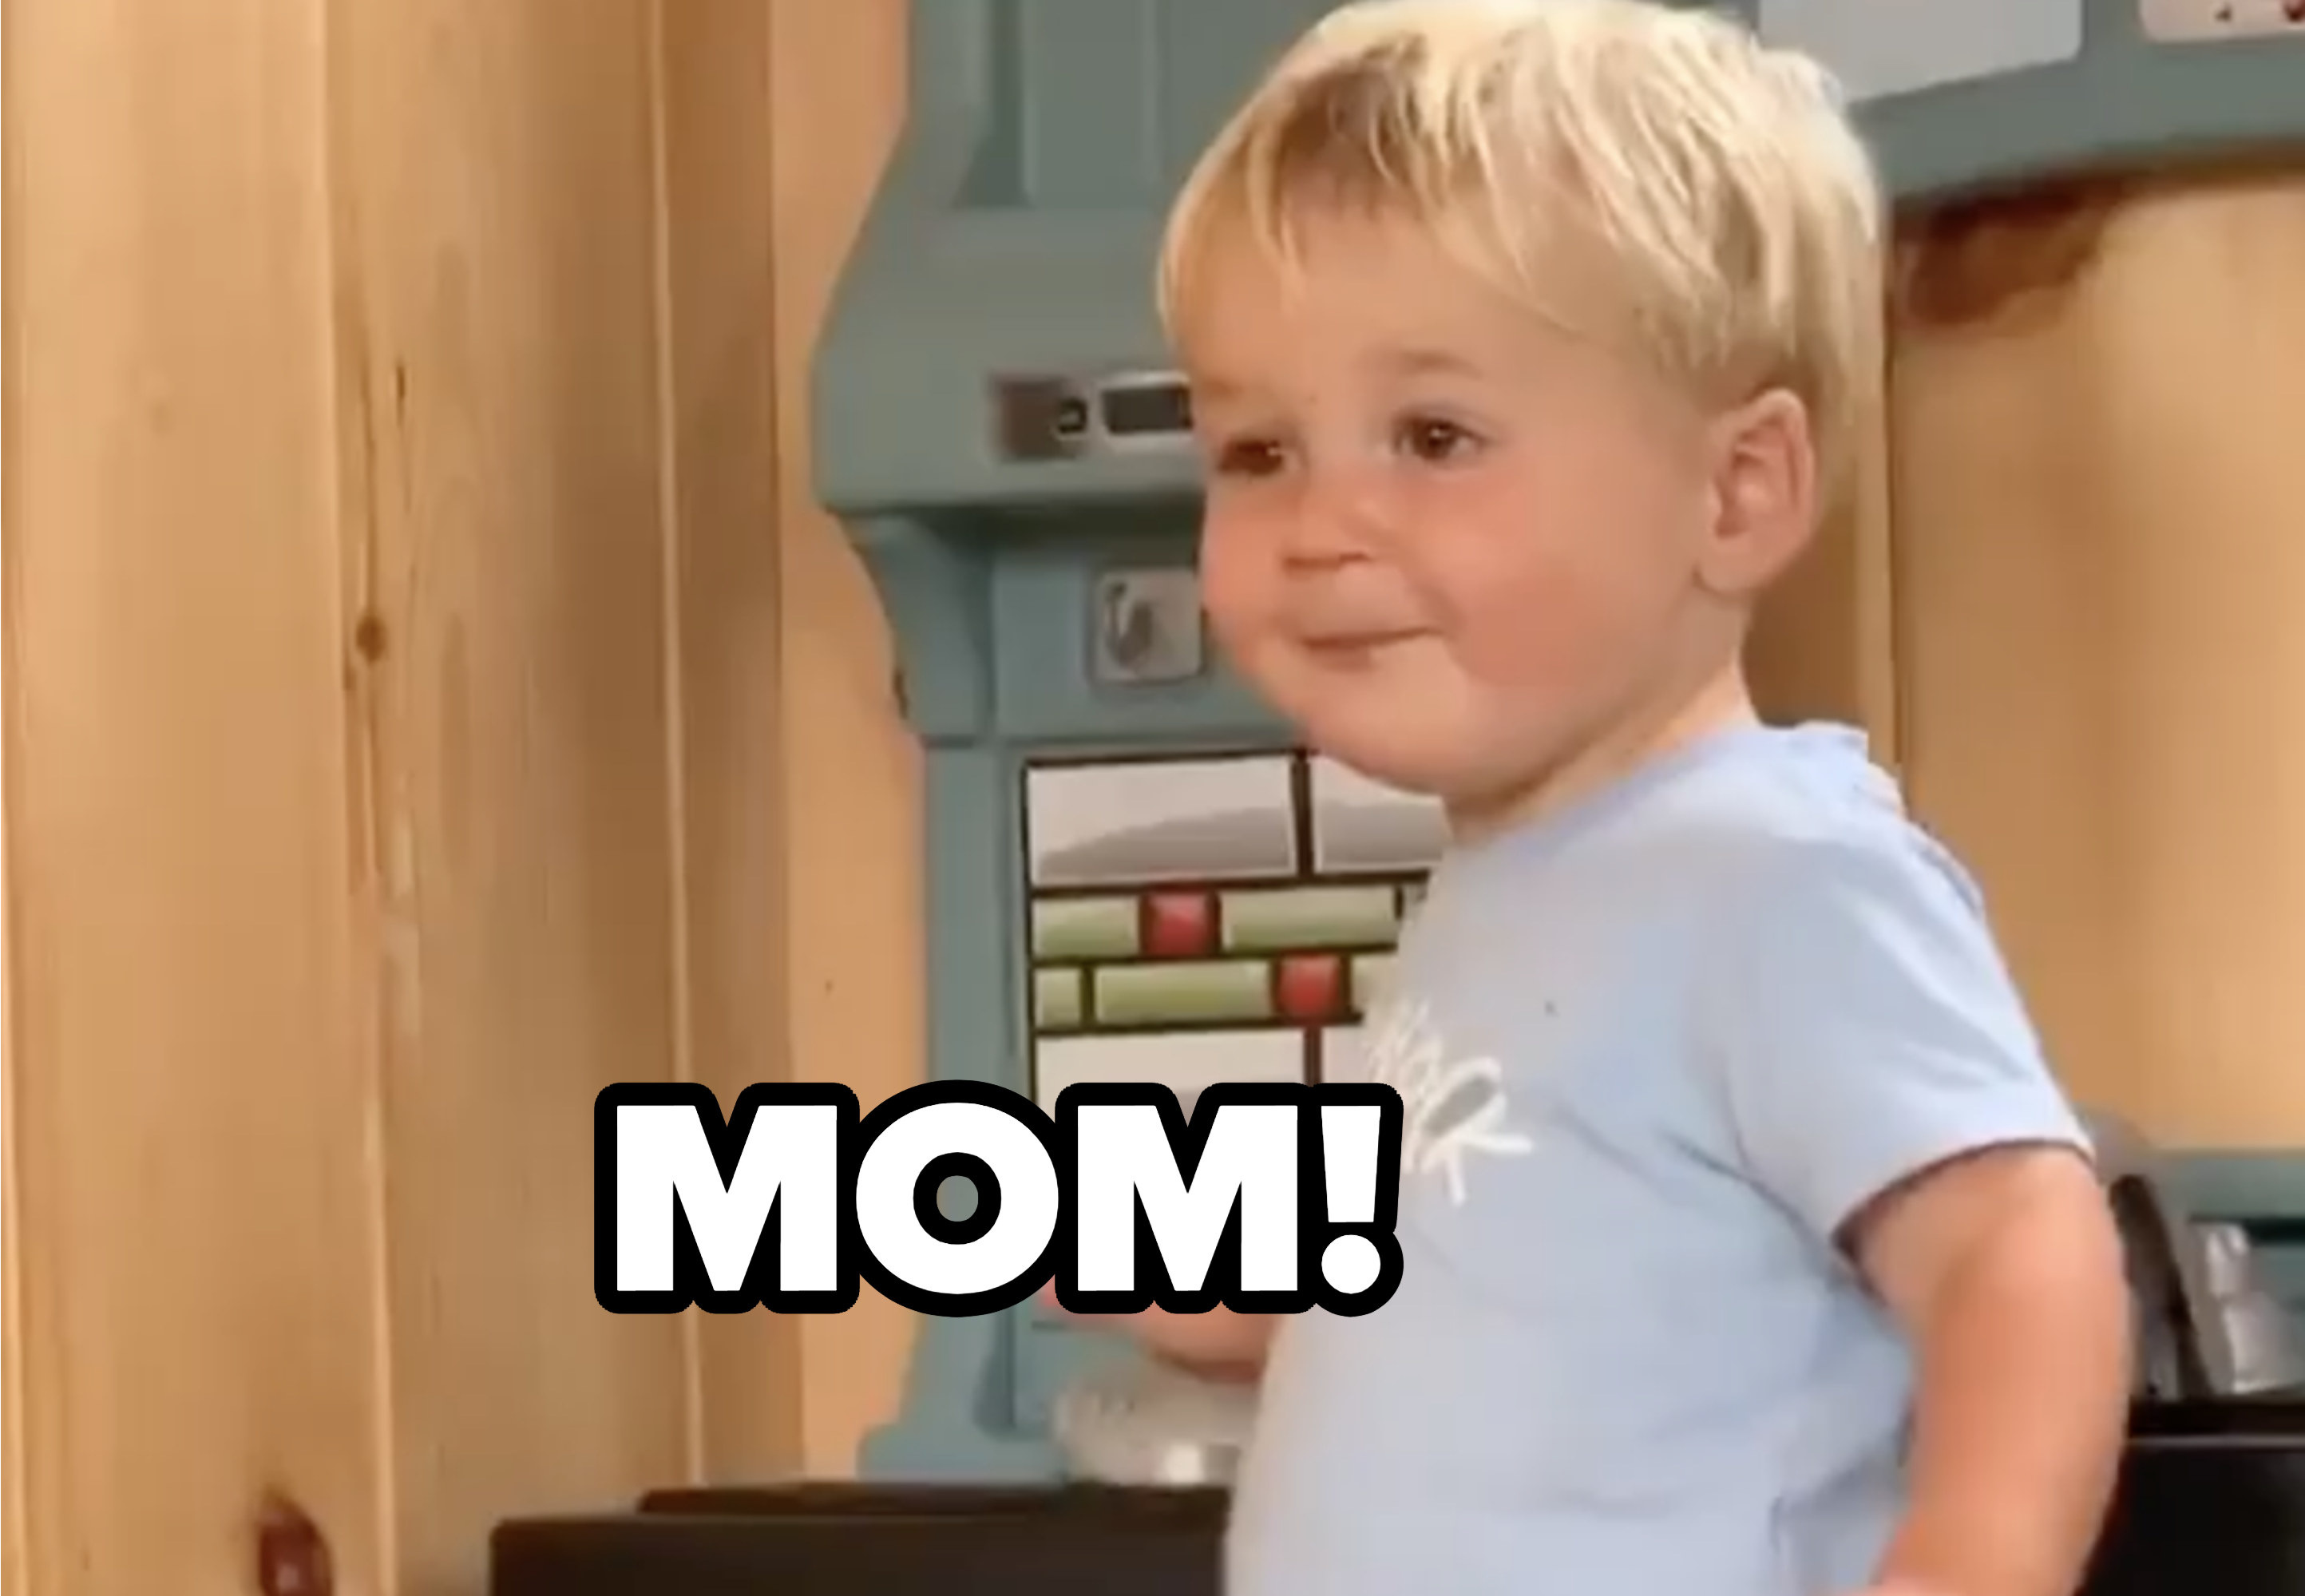 Amy Schumer's son saying mom